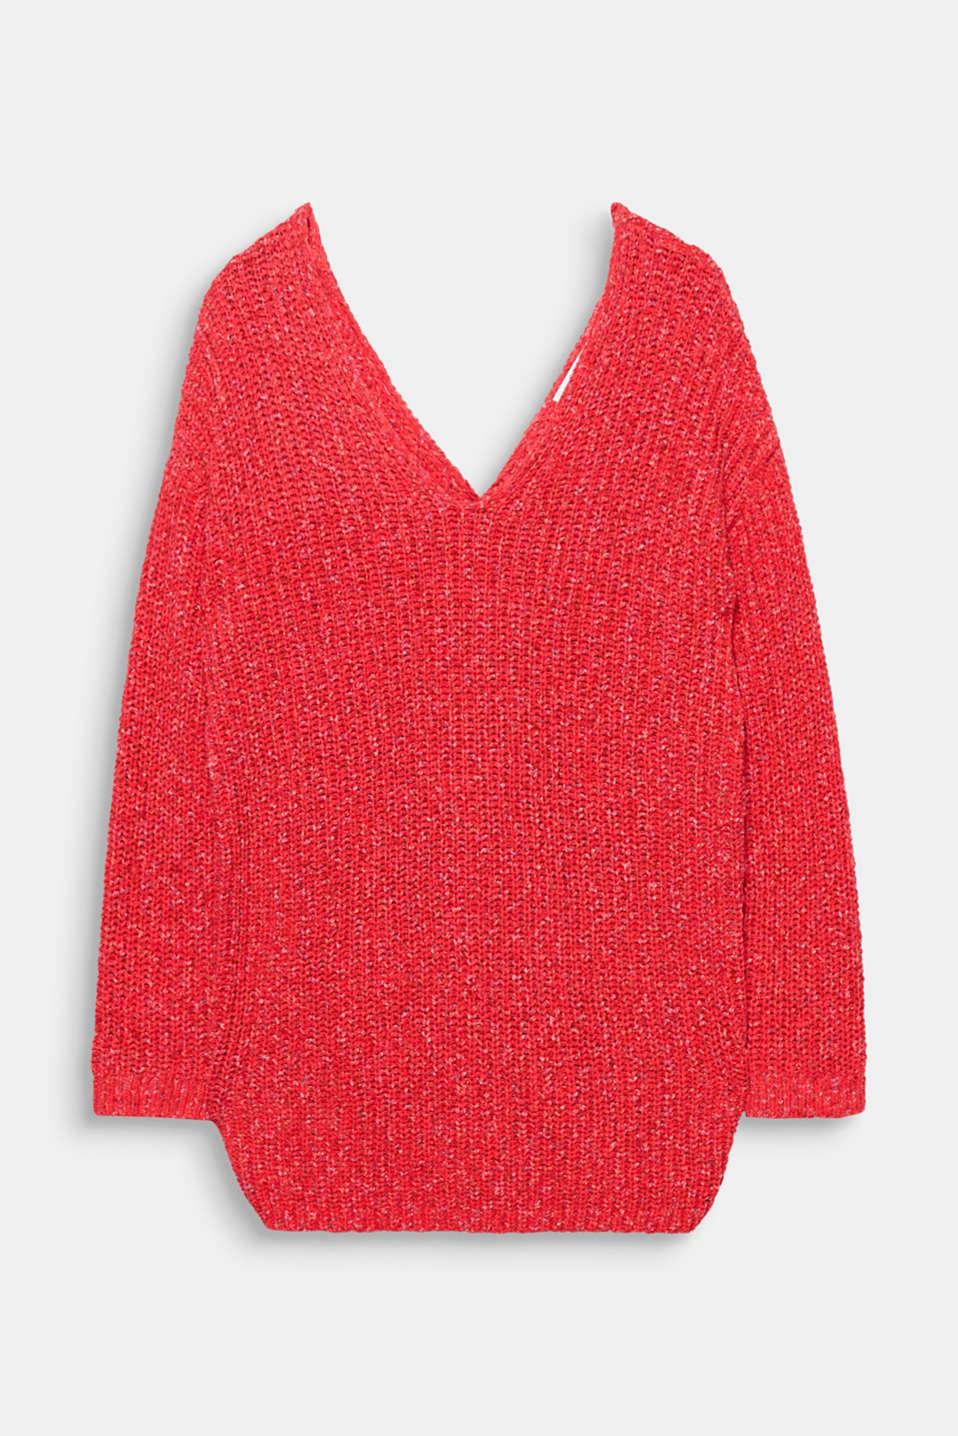 The deep V necklines and back knot detail give this jumper a stylish new silhouette.